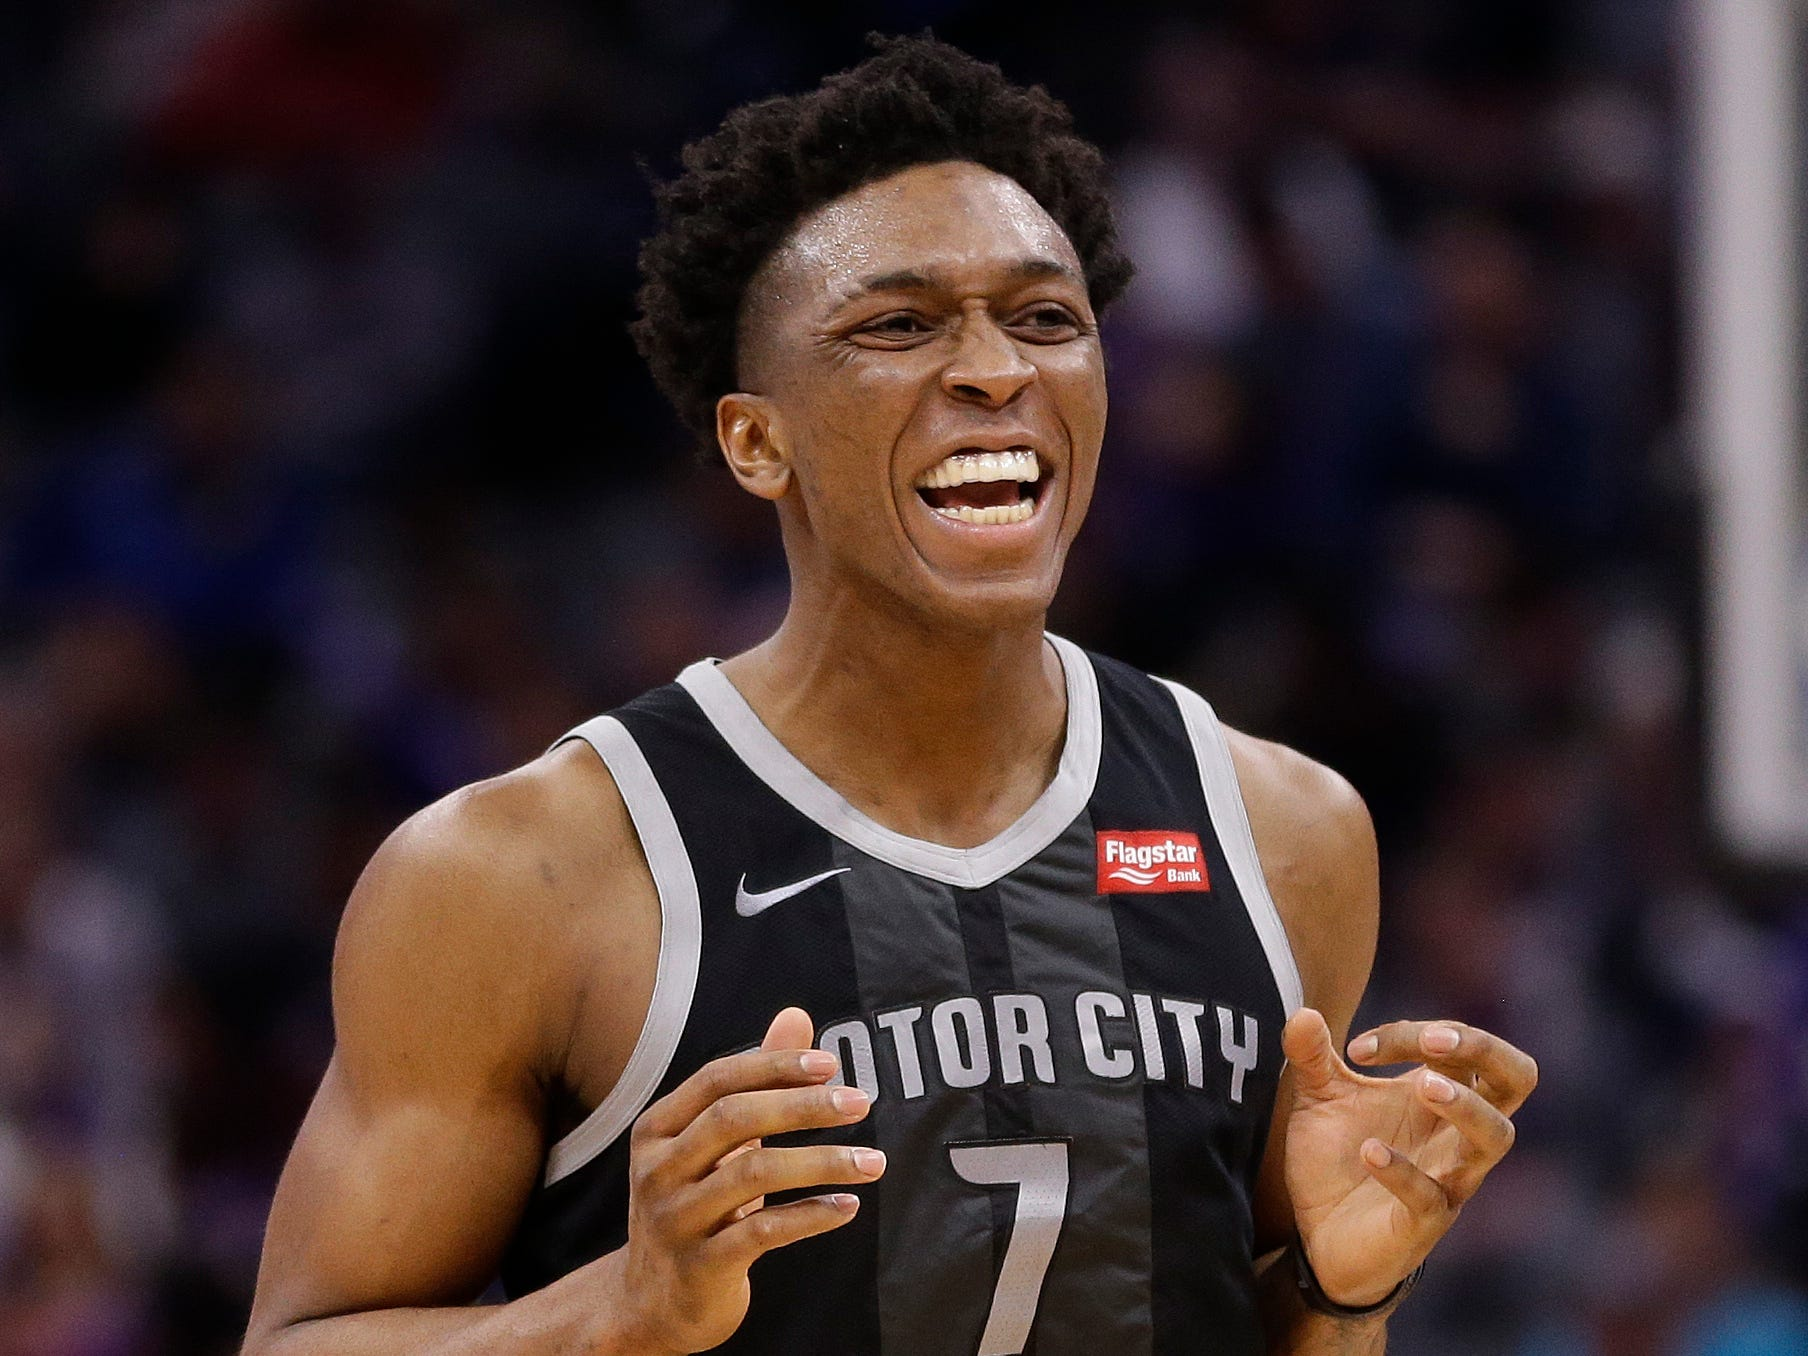 Pistons forward Stanley Johnson reacts after being called for a foul during the second half of the 112-102 loss to the Kings on Thursday, Jan. 10, 2019, in Sacramento.